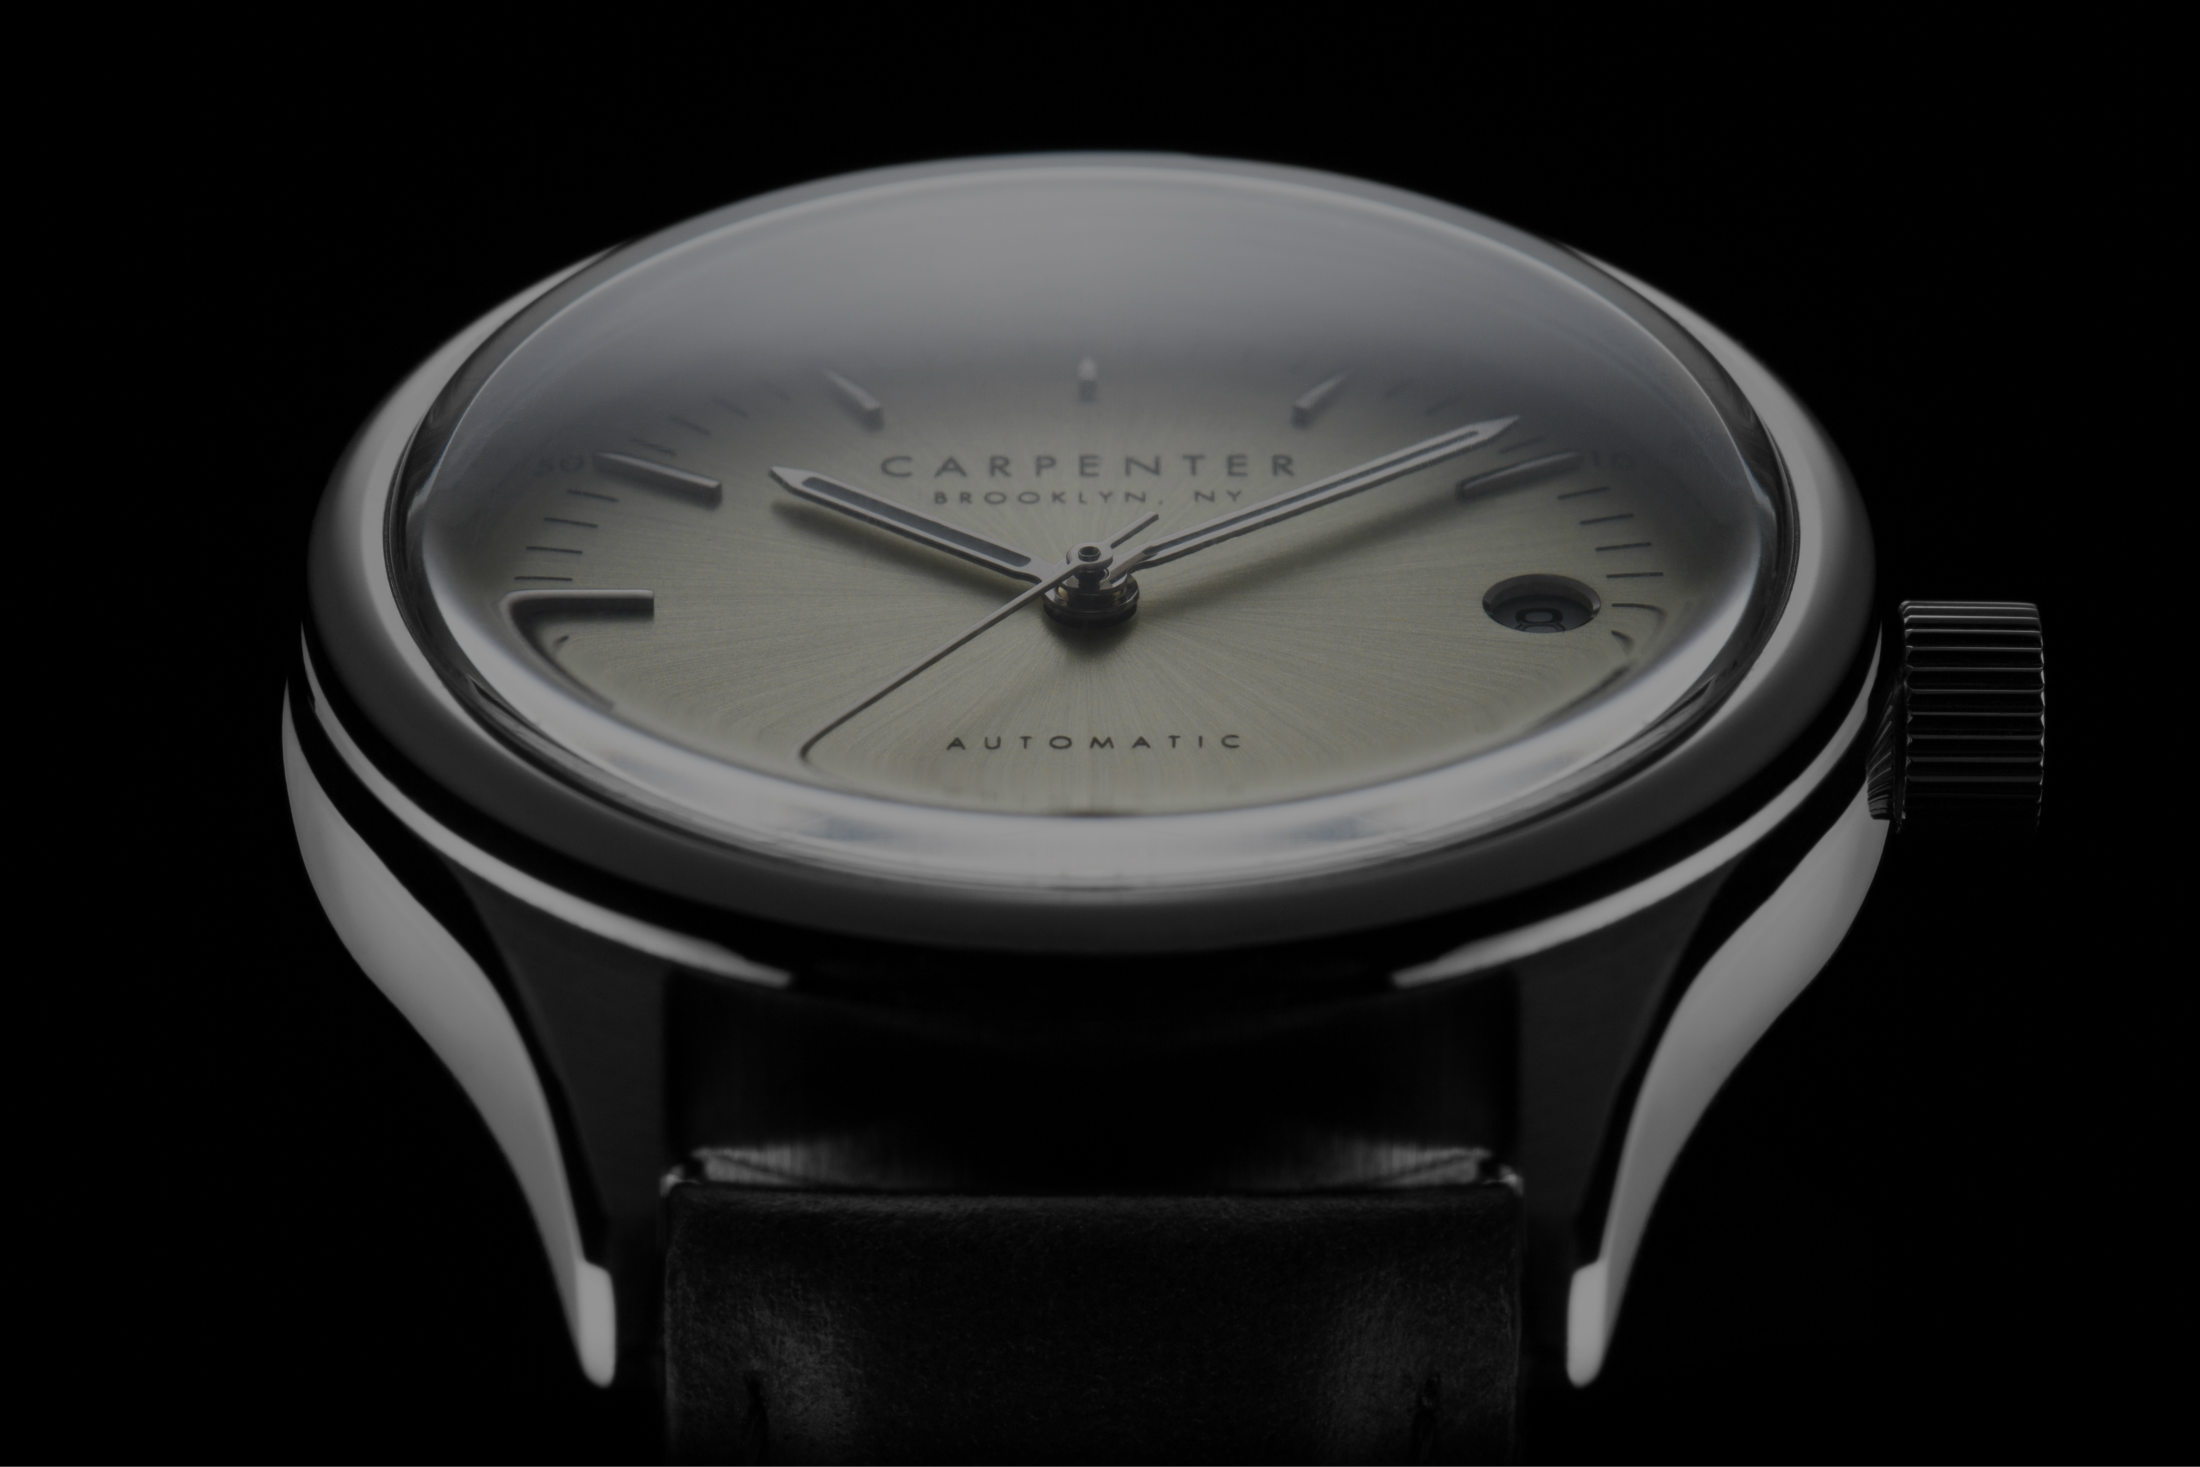 The Gent wristwatch by Carpenter Watches